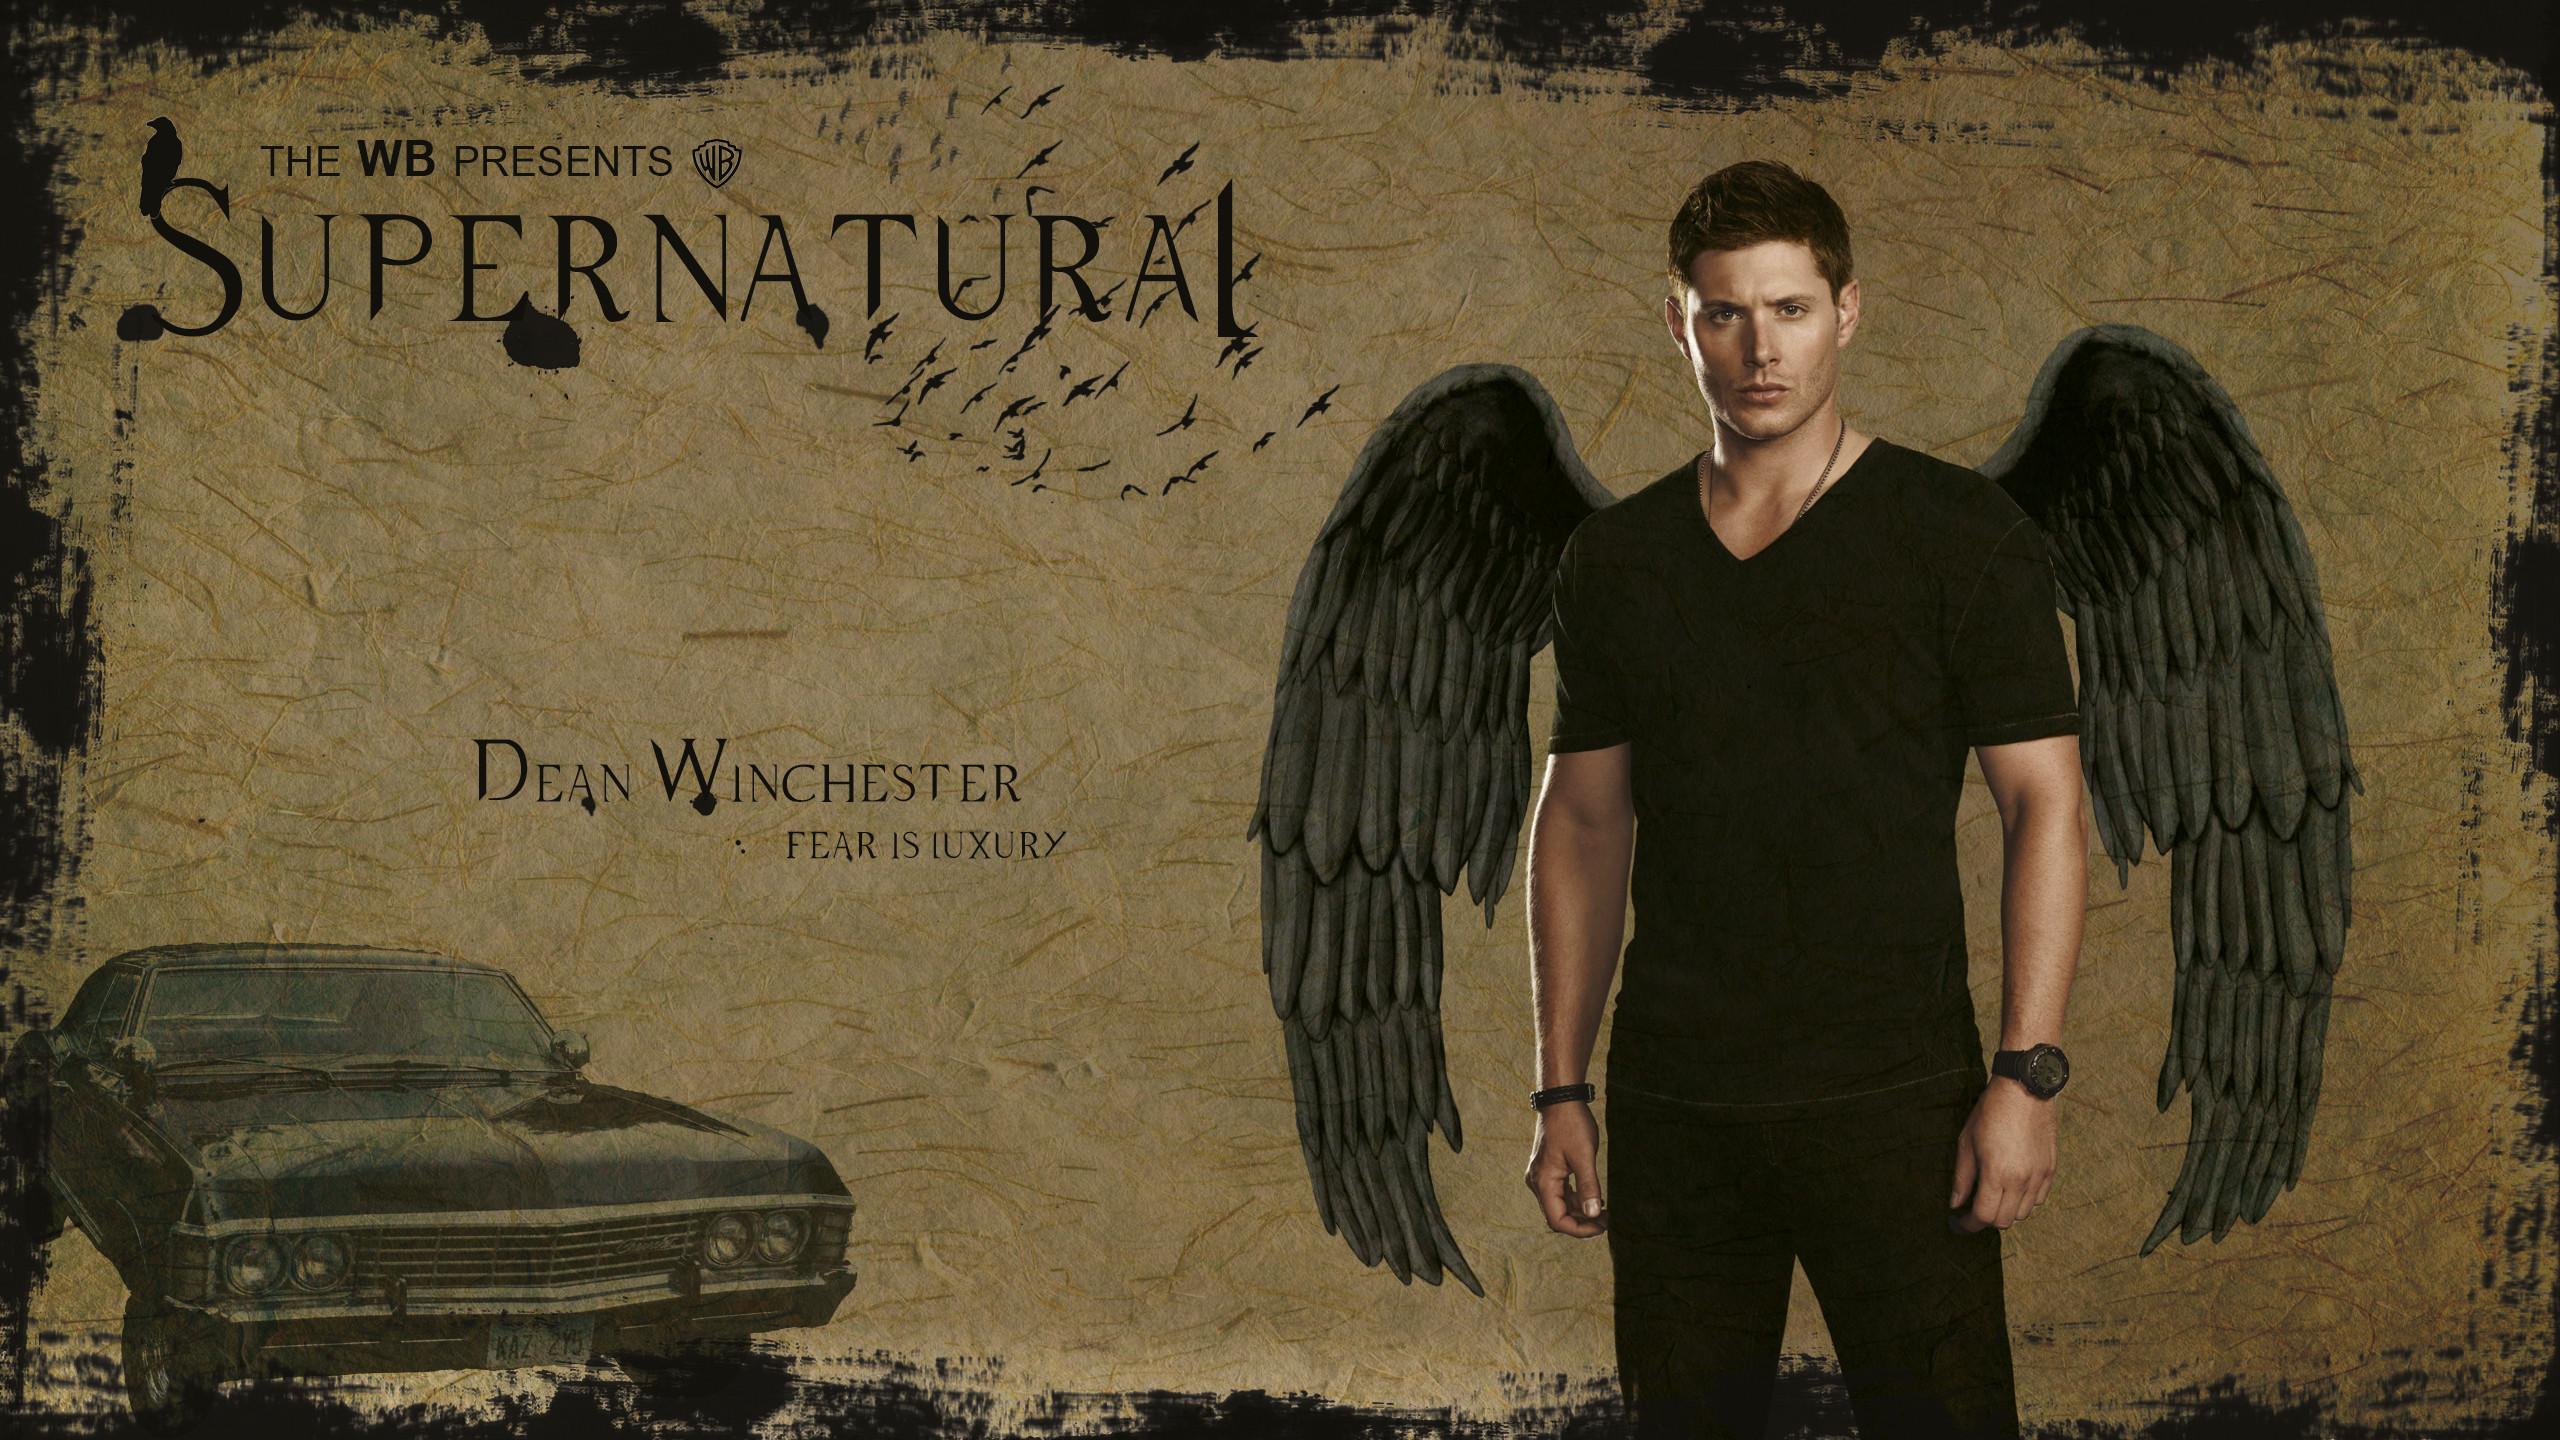 2560x1440 Supernatural Wallpaper by BeAware8 Supernatural Wallpaper by BeAware8